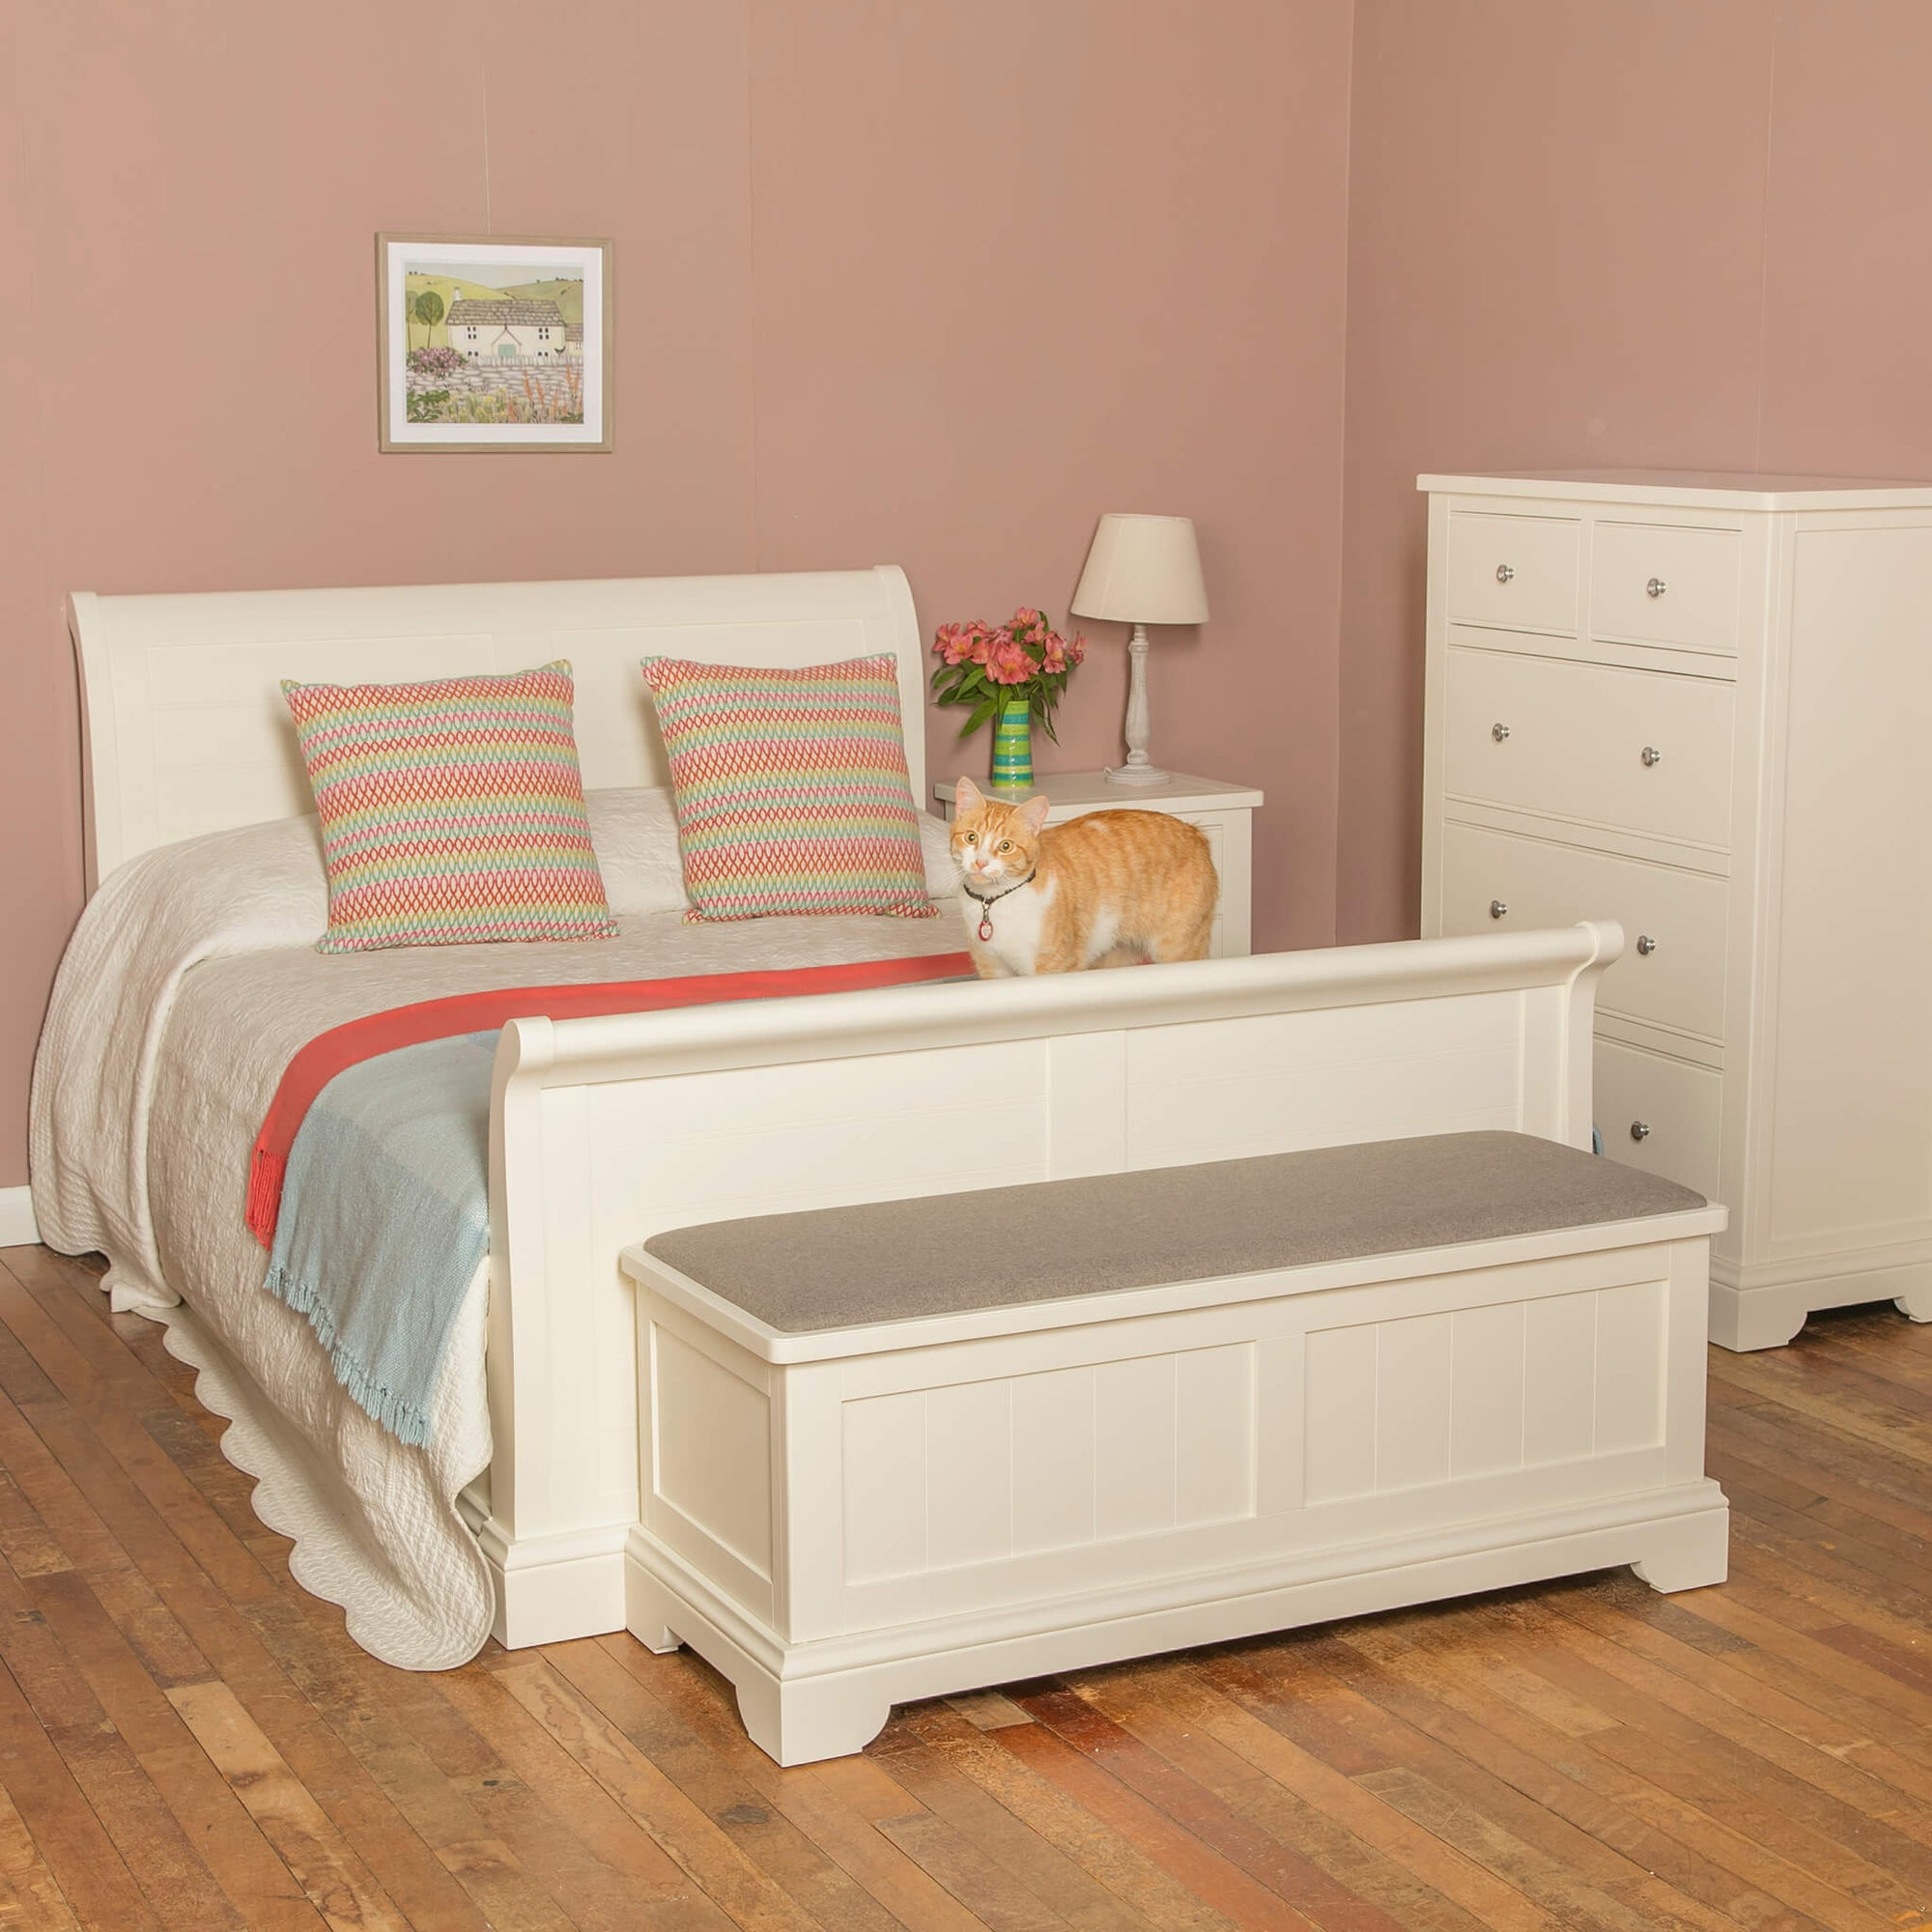 Lily-White-Painted-Furniture